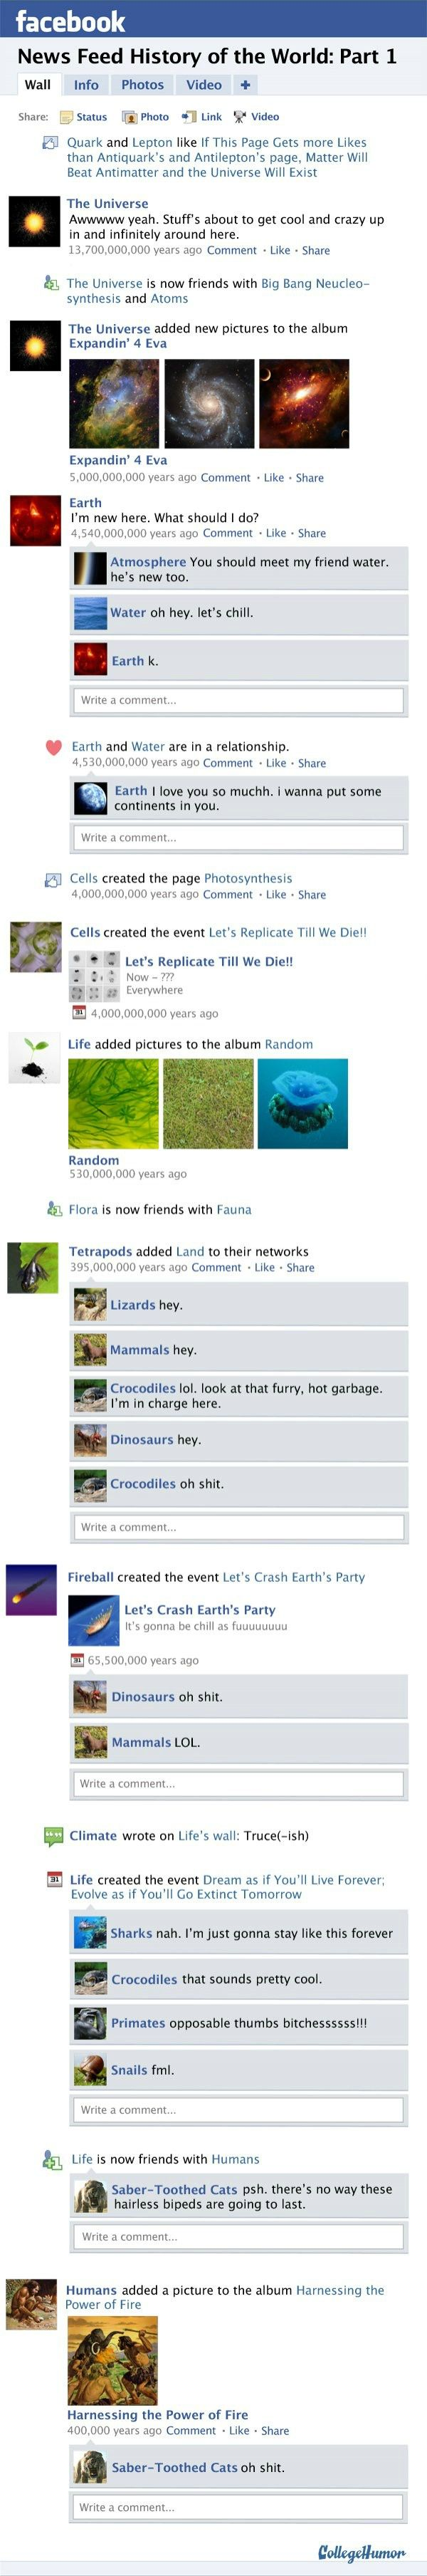 History Of The World Through Facebook